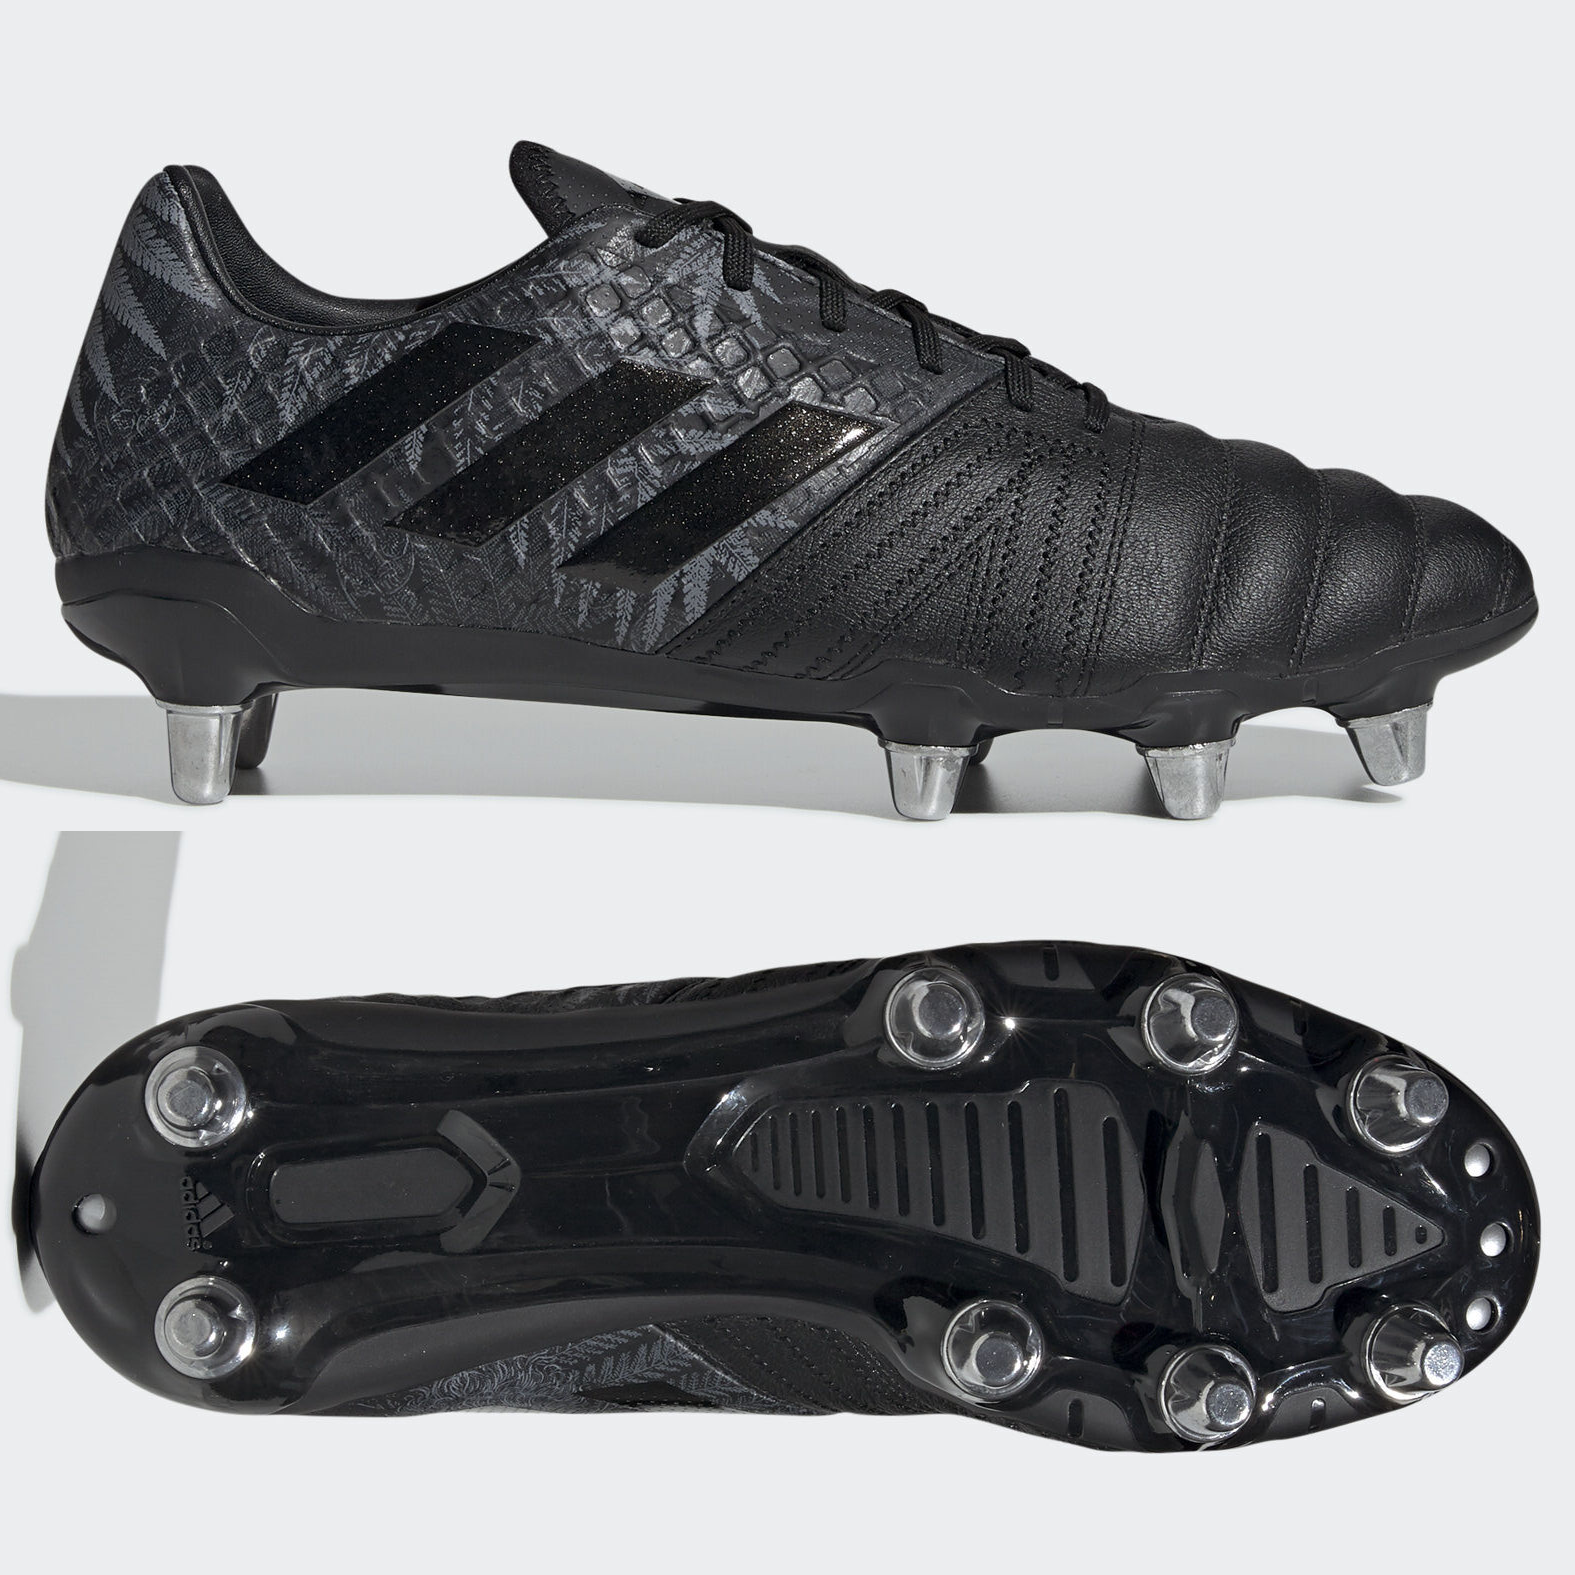 SG Mens Wide Fit Rugby BOOTS